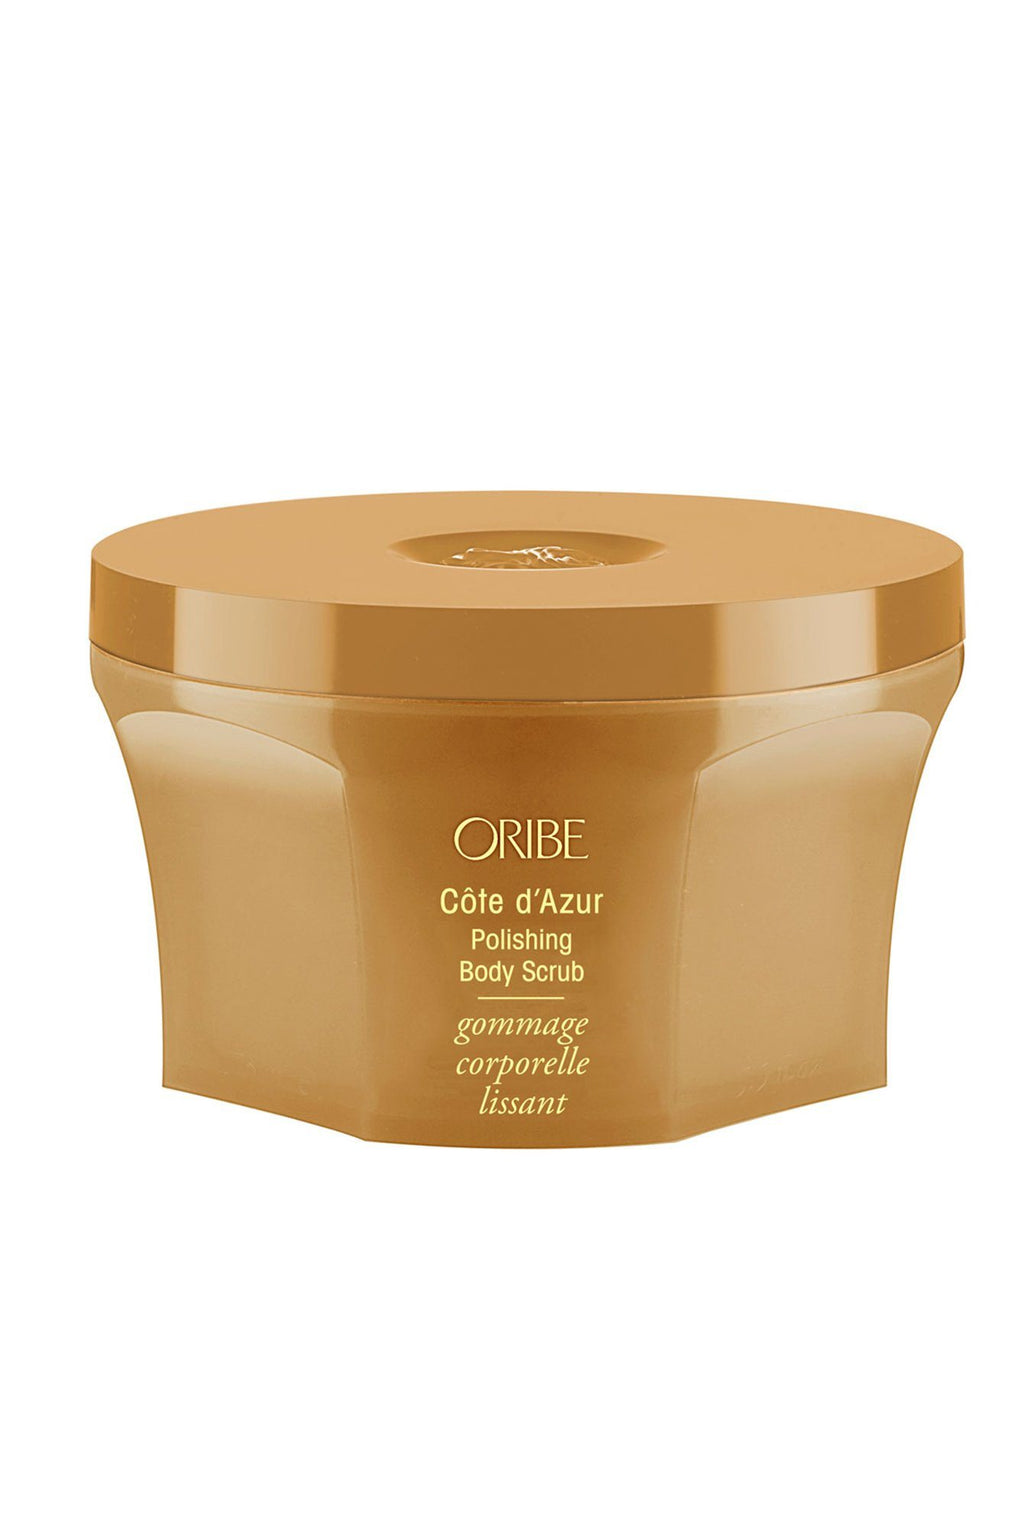 ORIBE | Cote d'Azur Polishing Body Scrub